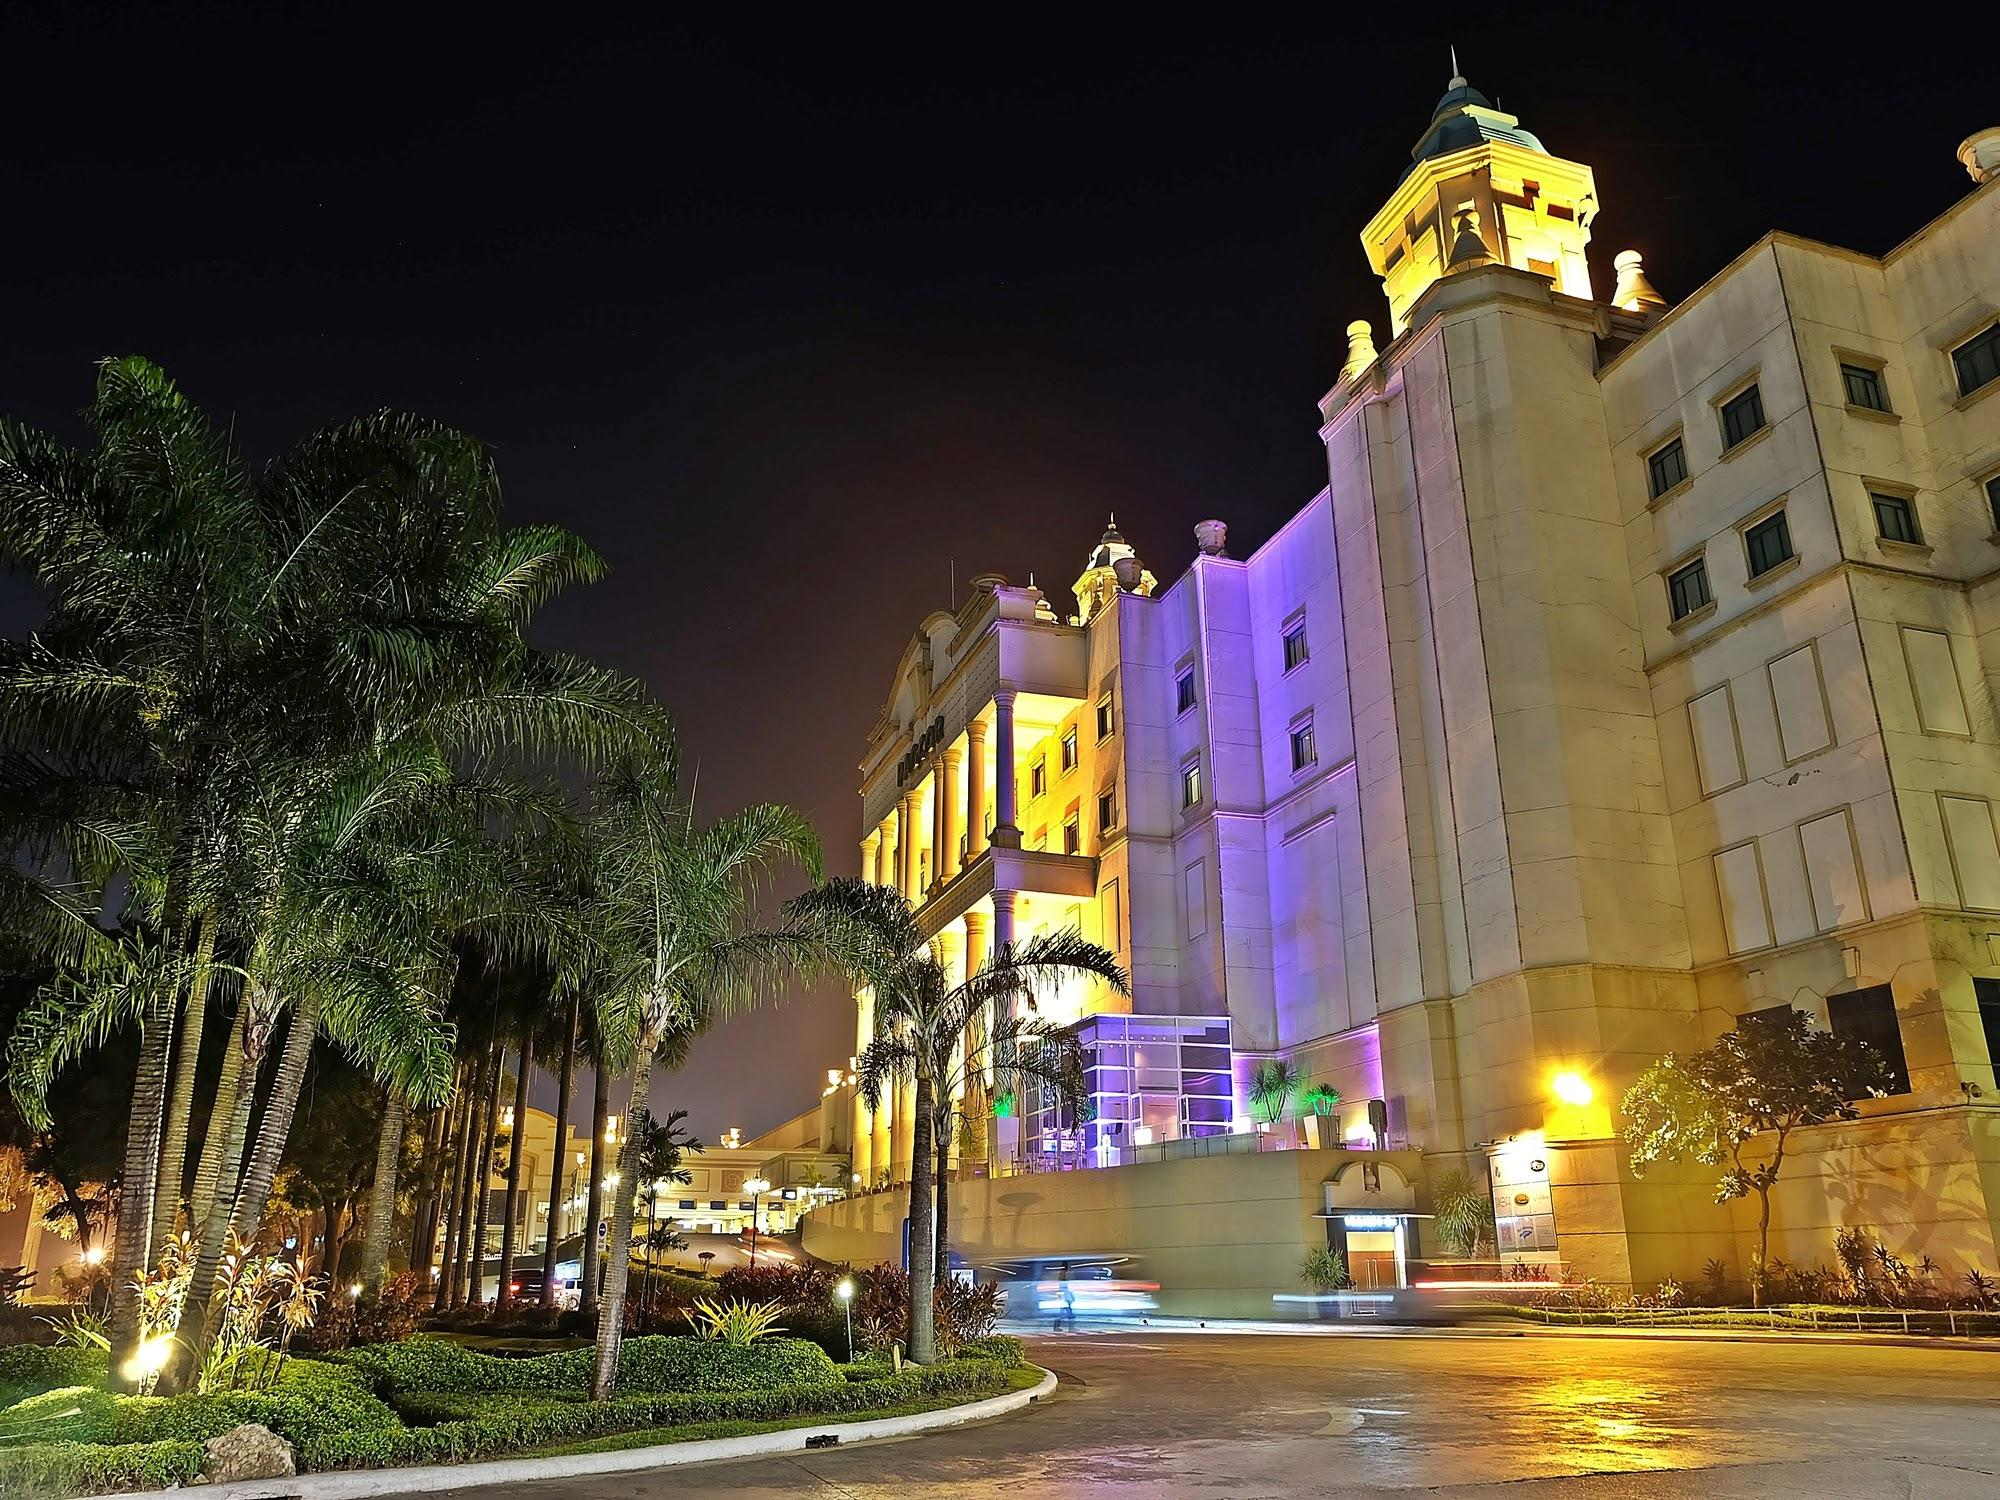 Waterfront Cebu City Hotel and Casino Cebu - Hotellin ulkopuoli